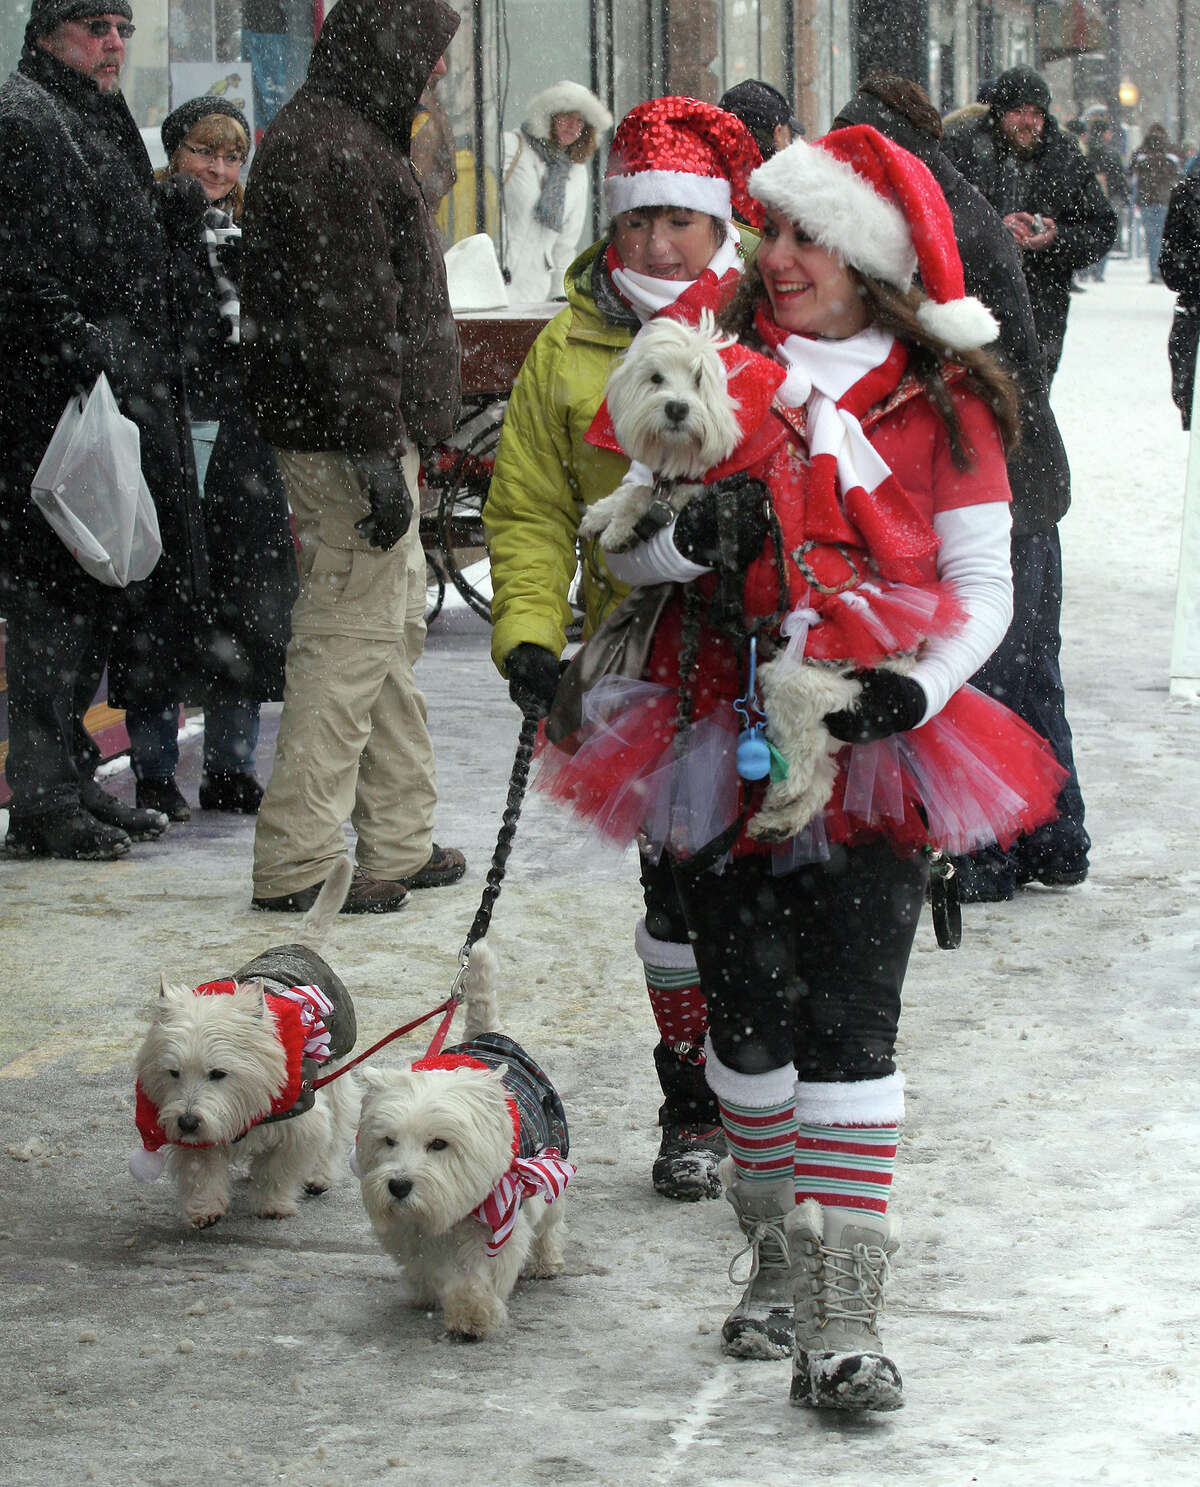 """In this Dec. 14, 2013 photo, Janet Lunig of Providence, R.I., left, and Elana Awer browse through downtown Seneca Falls, N.Y., with their dogs Linus, Hobbs and Juliana, during the annual weekend festival honoring the classic movie """"It's a Wonderful Life"""". The village is thought to be the inspiration for the movie. This cannot be proven. But it has not stopped locals from celebrating the beloved Frank Capra movie every December. (AP Photo/The Times, Spencer Tulis) ORG XMIT: NYGEN102"""